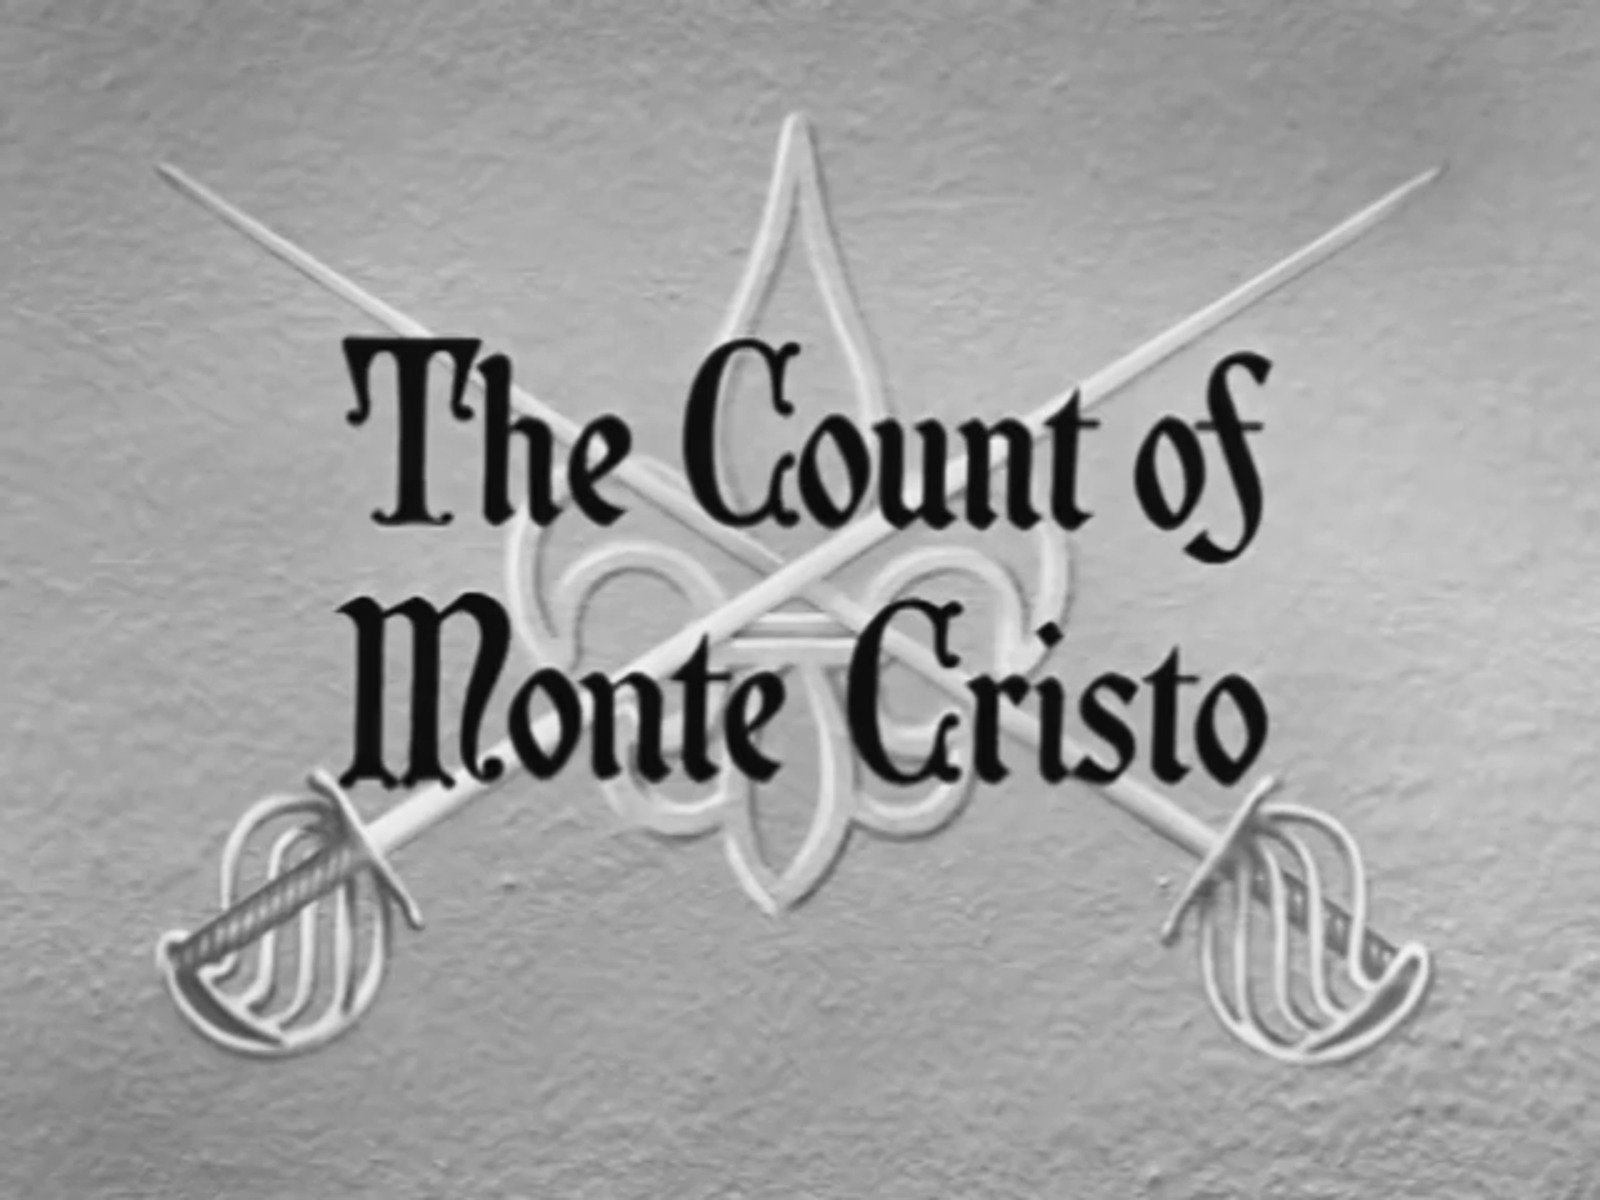 Amazon The Count Of Monte Cristo George Dolenz Nick Cravat Robert Cawdron Charles Bennett Dennis Vance Sidney Salkow Alexandre Dumas Pere